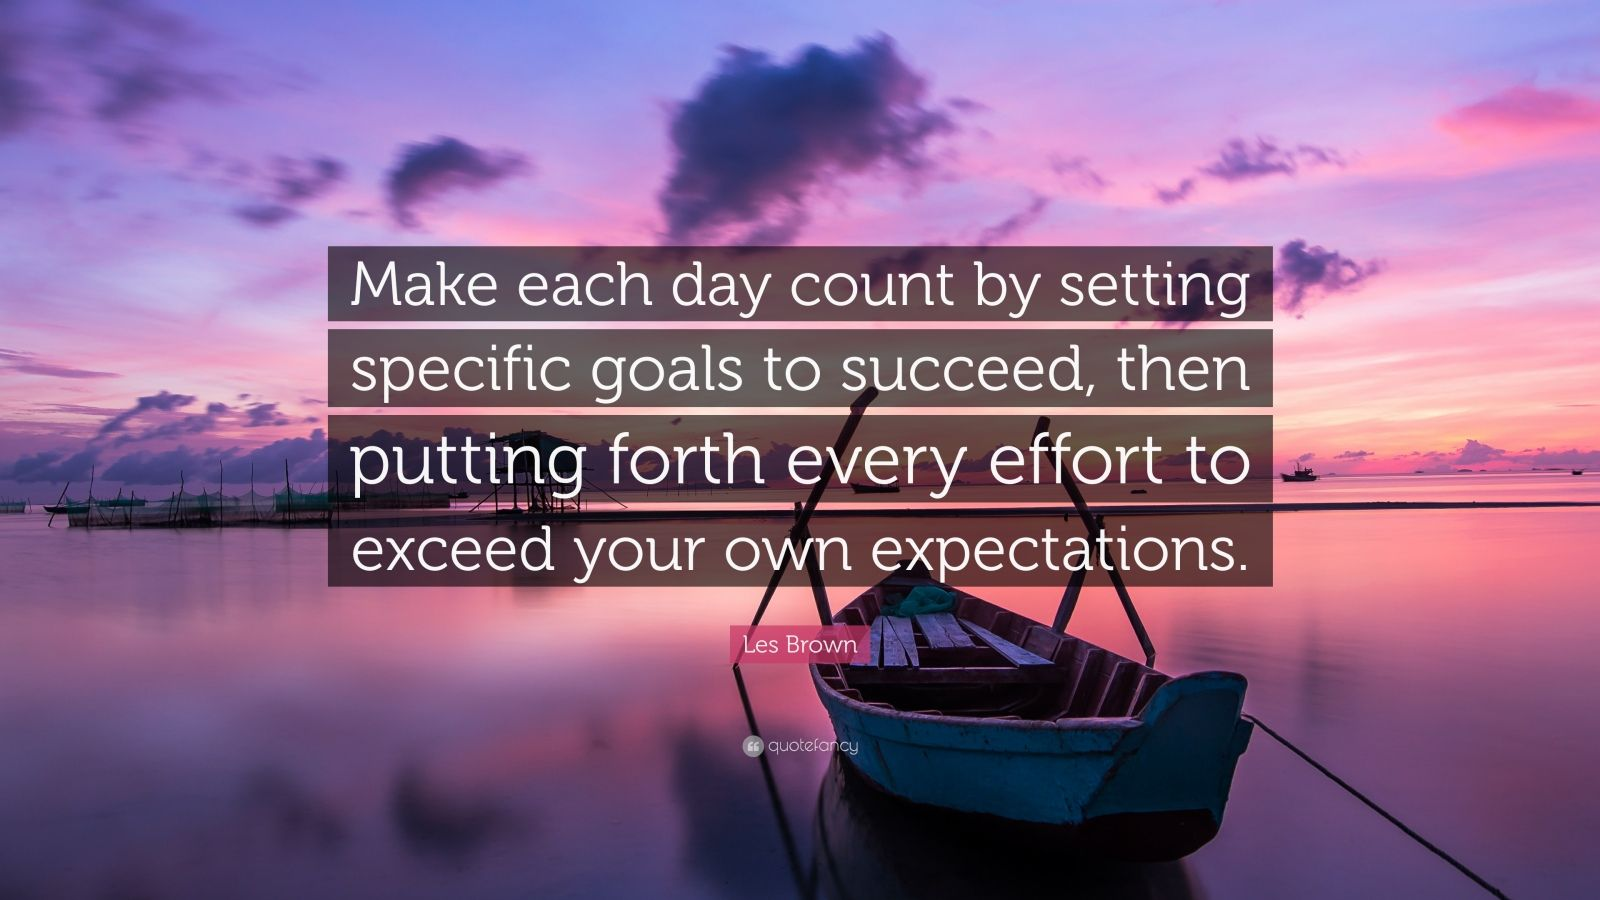 Expectations Quote Wallpapers Les Brown Quote Make Each Day Count By Setting Specific